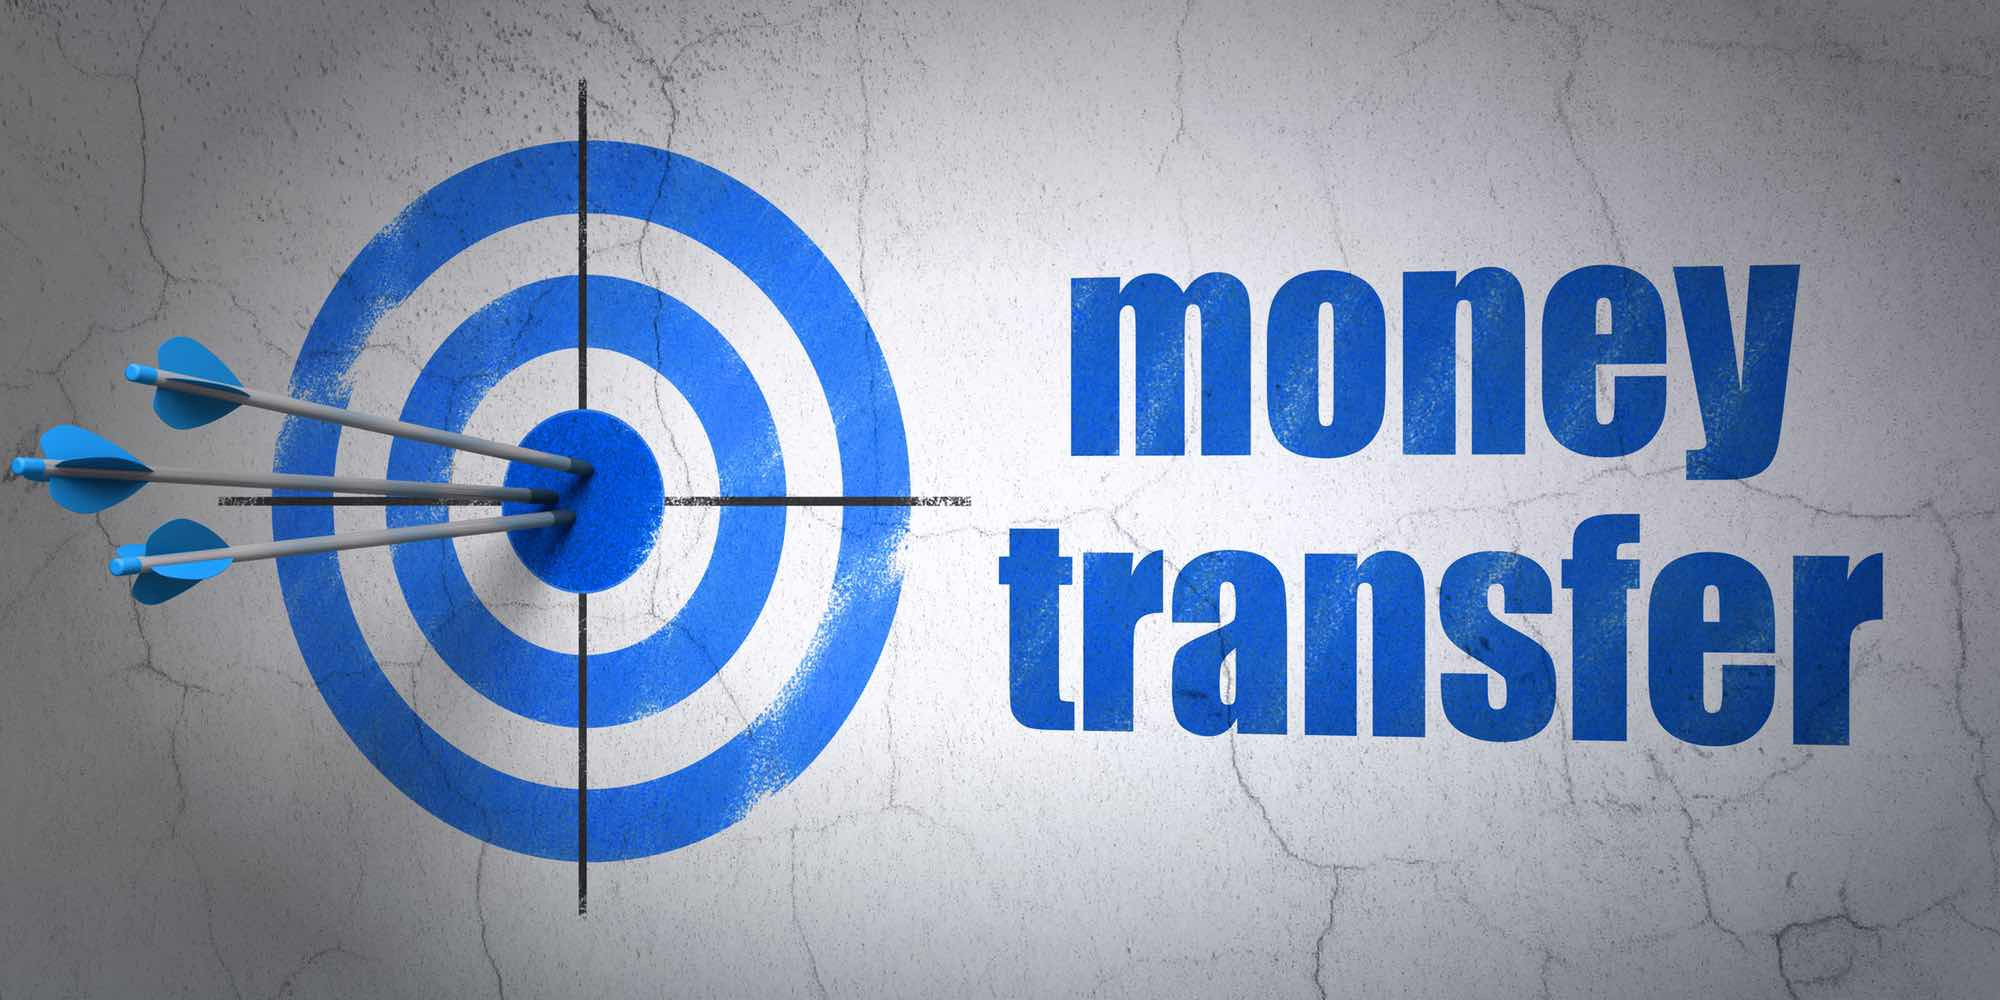 Top 10 Money Transfer  Remittances Blogs  Banking. How To Become A Successful Person. Bank Of America Merchant Services Jobs. Carpet Cleaning Lacey Wa Dentist Rockville Md. Paranormal Website Templates. Data Cable Installation Stop Foreclosure Help. Online Colleges In Mississippi. Schools For Criminology Call Center Franchise. Air Conditioning Repair Certification